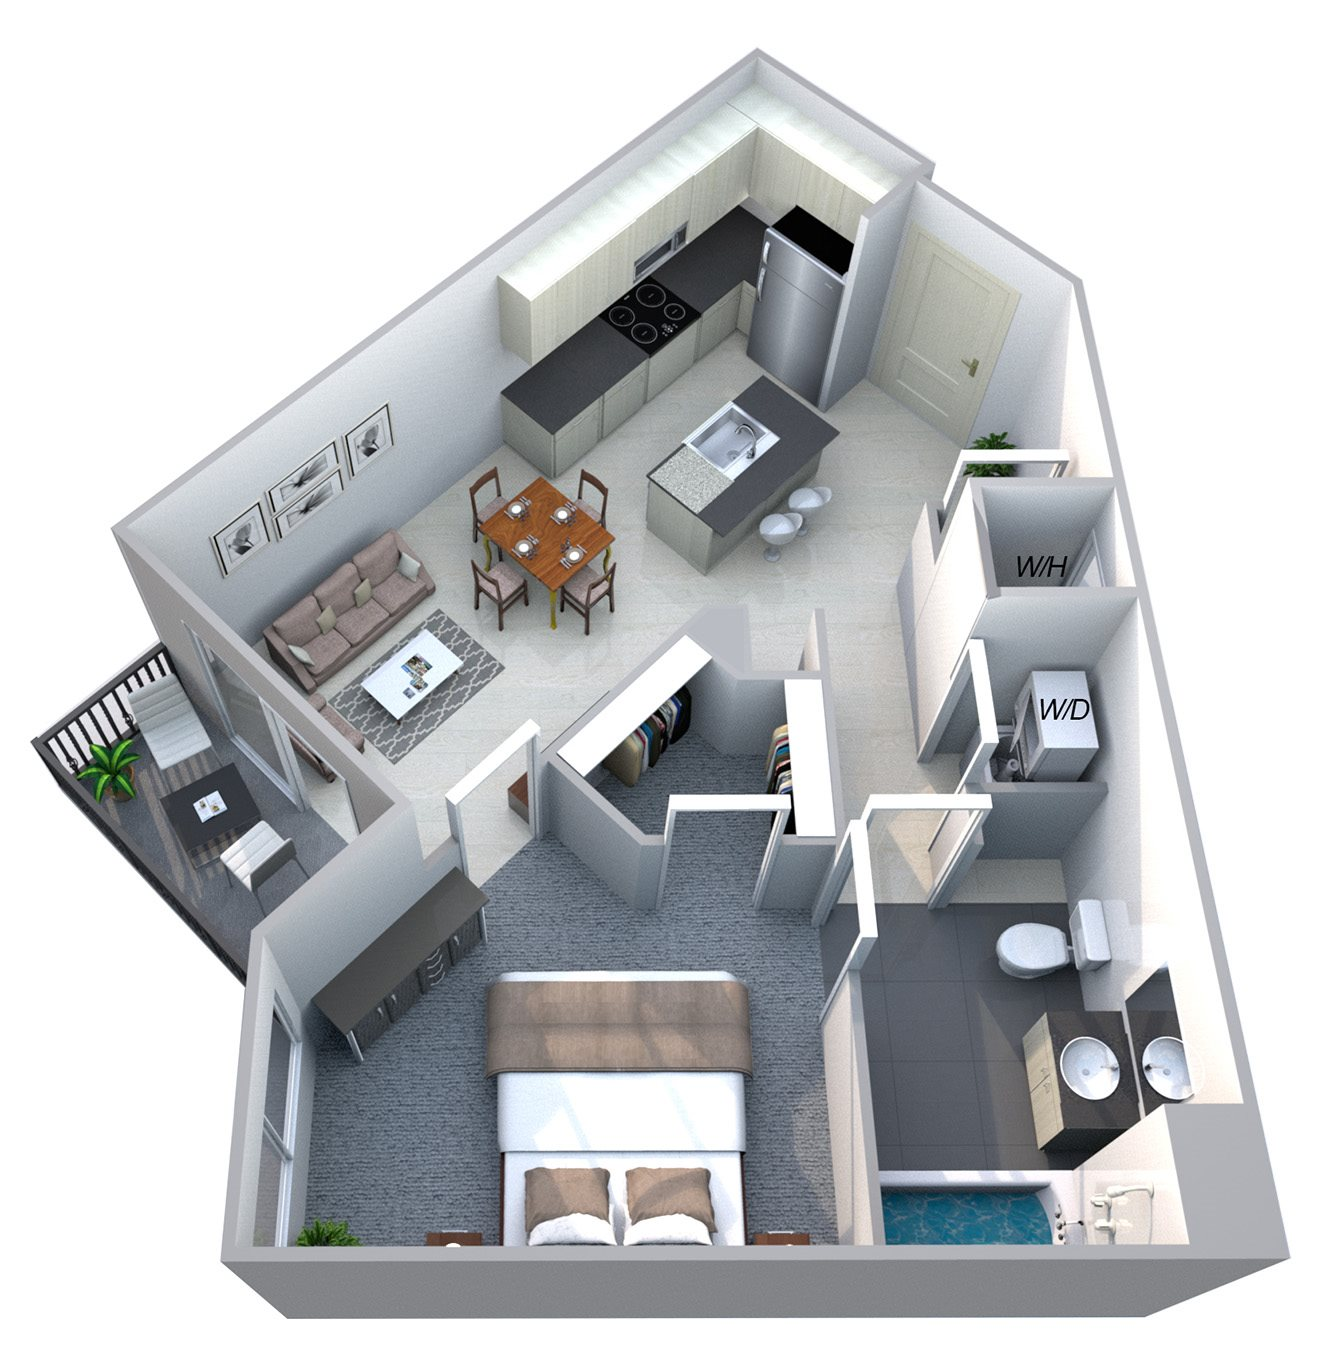 Harmony - One Bdrm Floor Plan at Cycle Apartments, Ft. Collins, CO